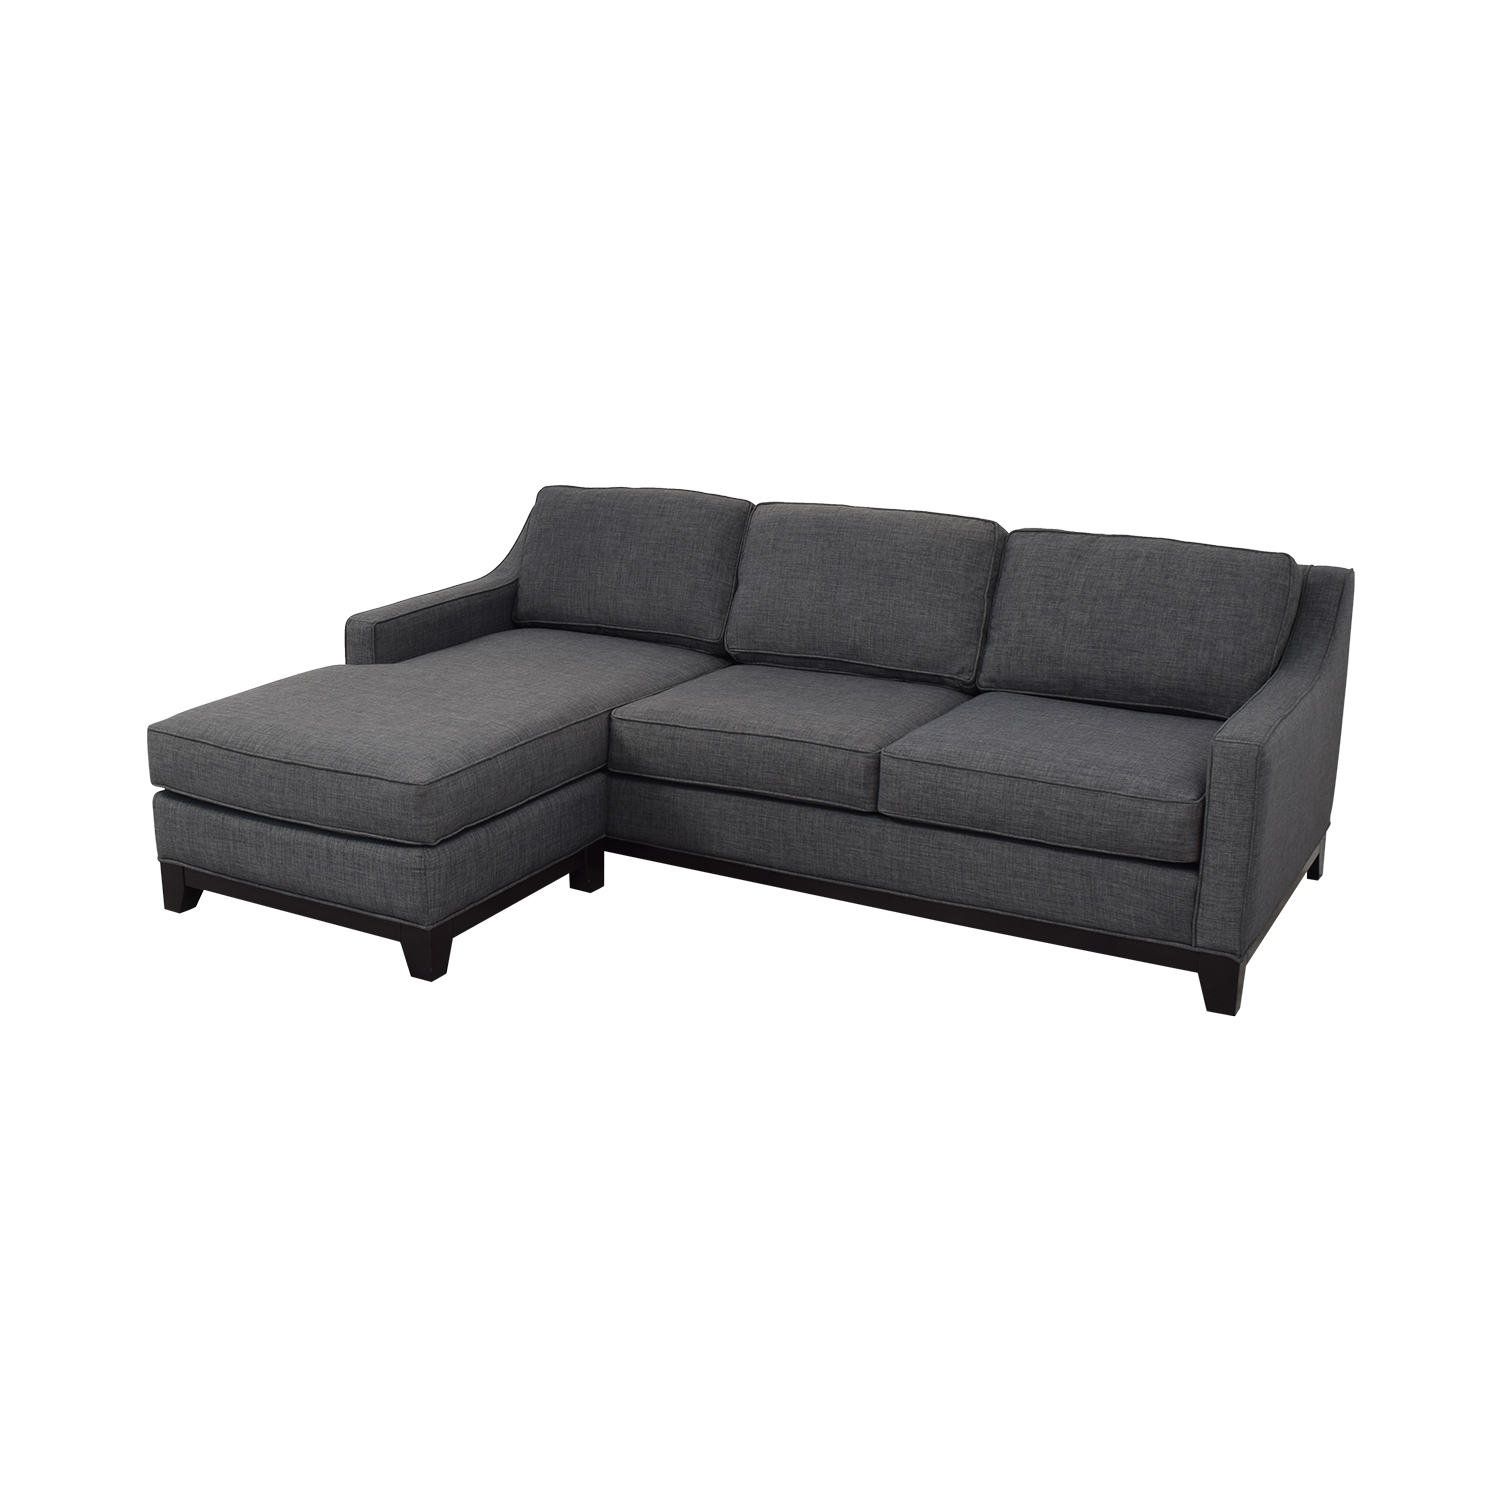 buy Macy's Keegan Fabric Reversible Chaise Sectional Sofa Macy's